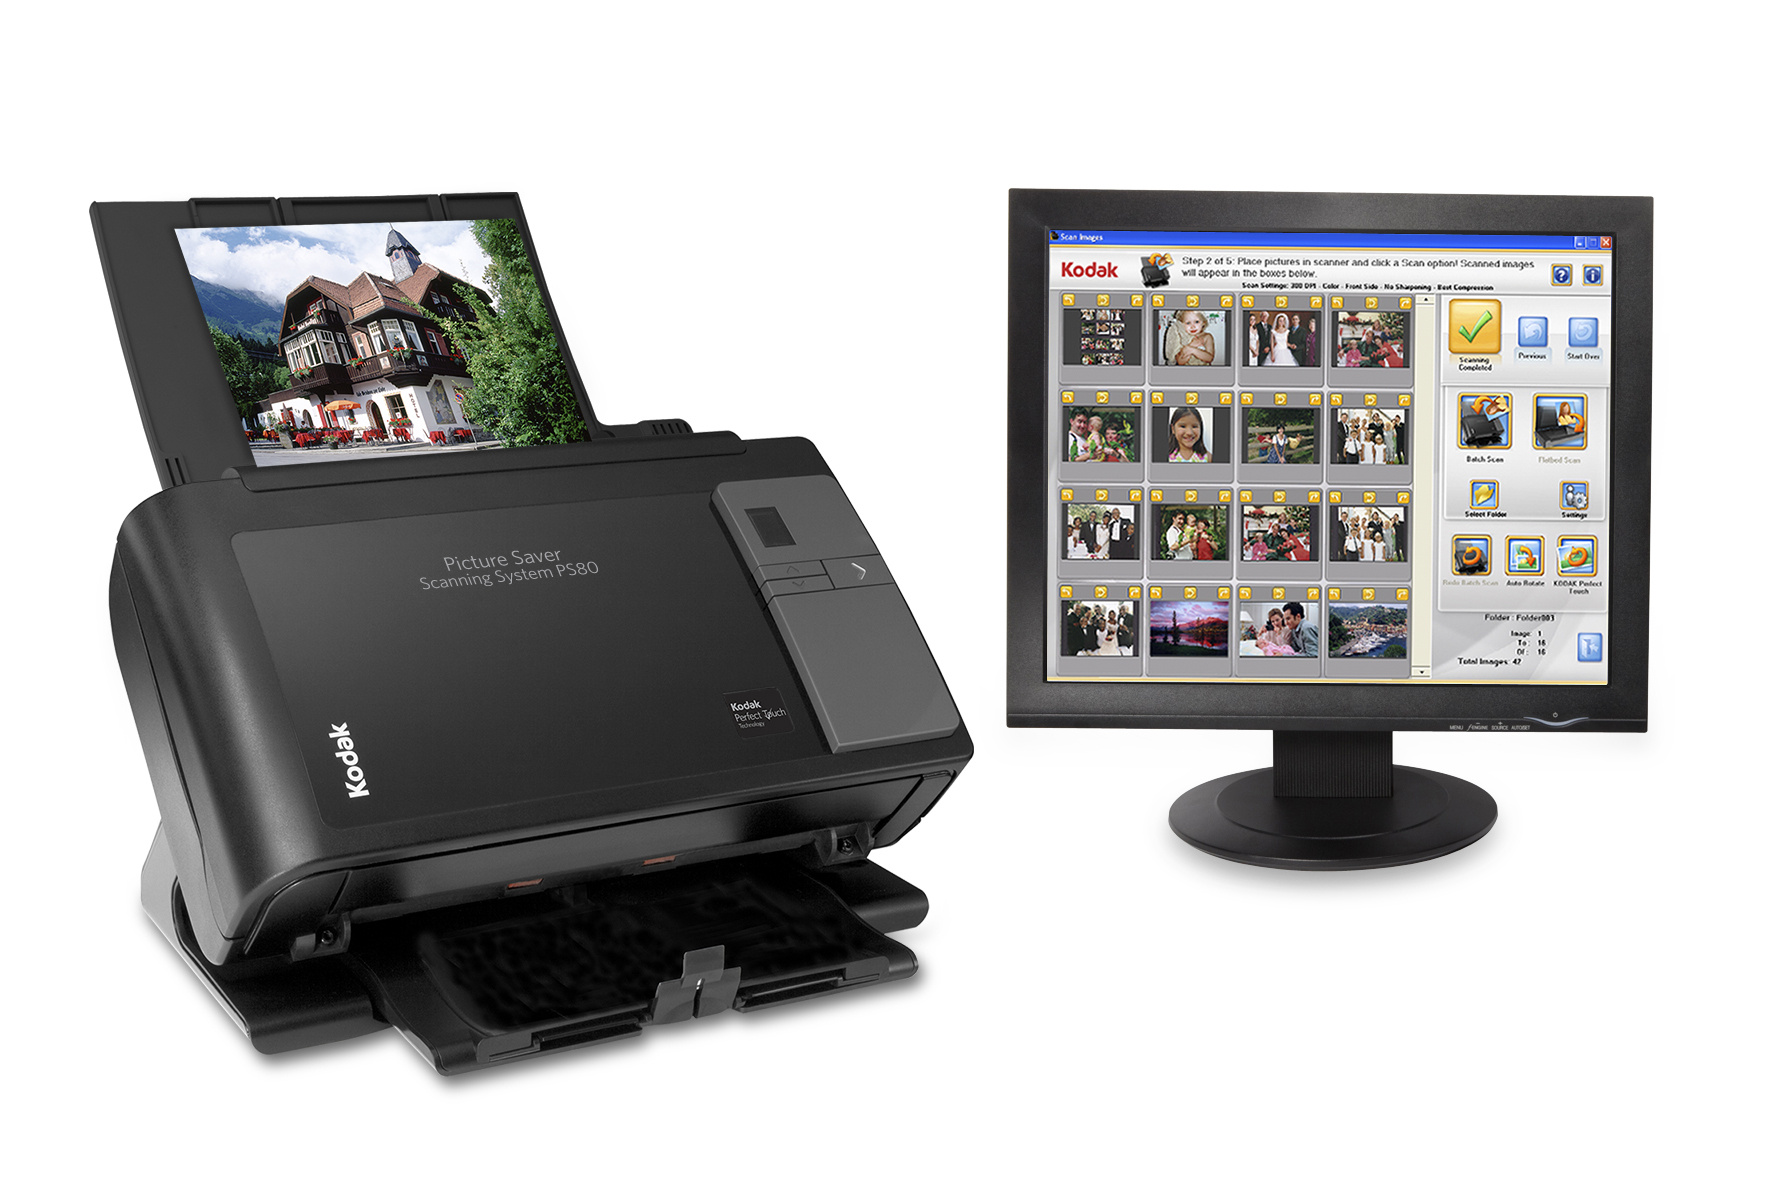 Picture Saver Scanning System